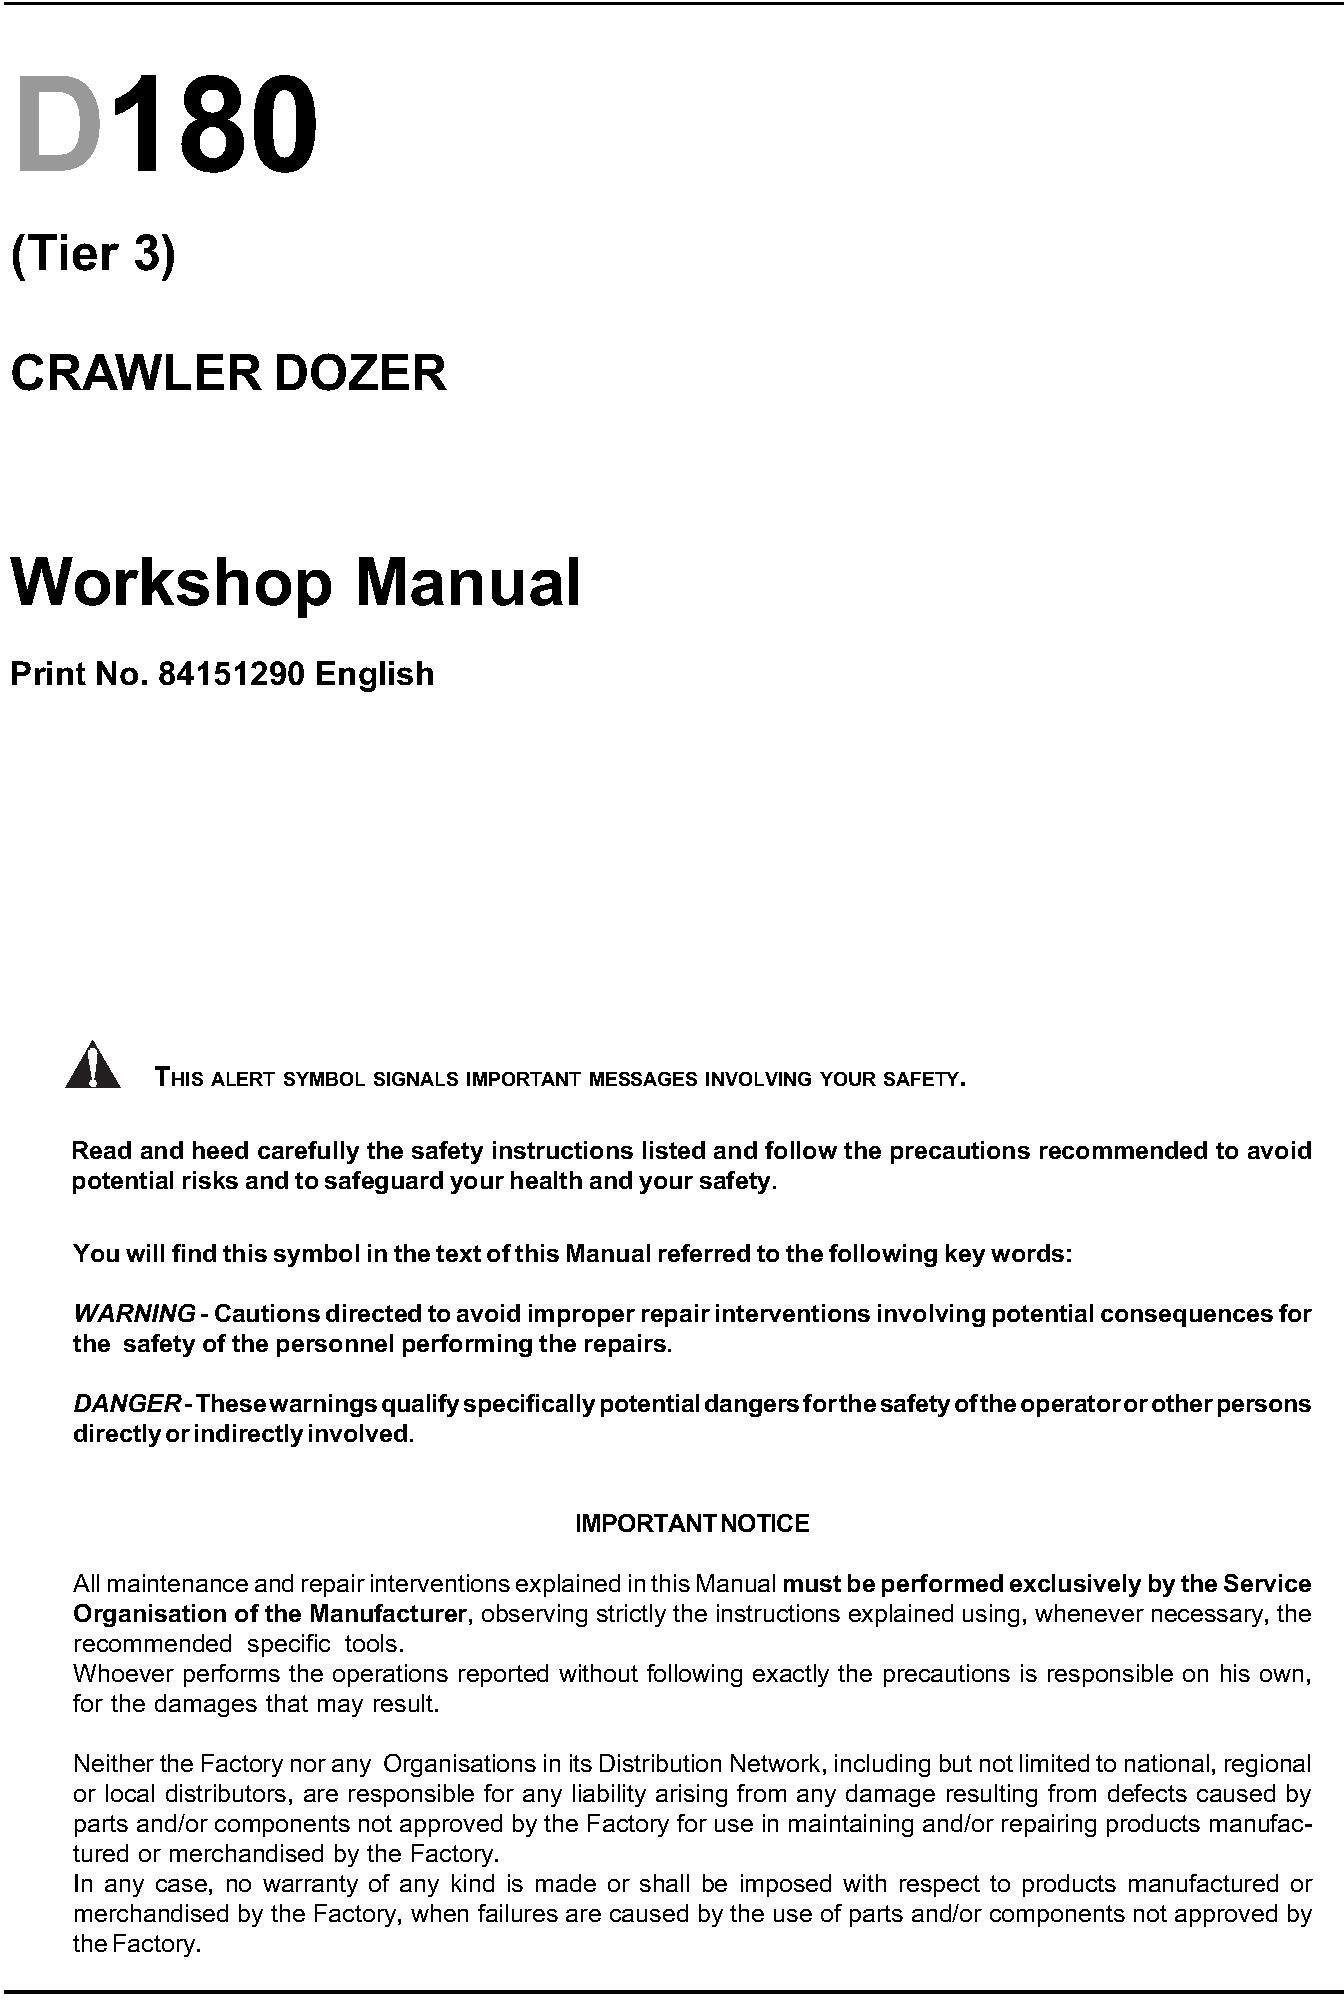 New Holland D180 Crawler Dozer Tier 3 Workshop Service Manual - 19981